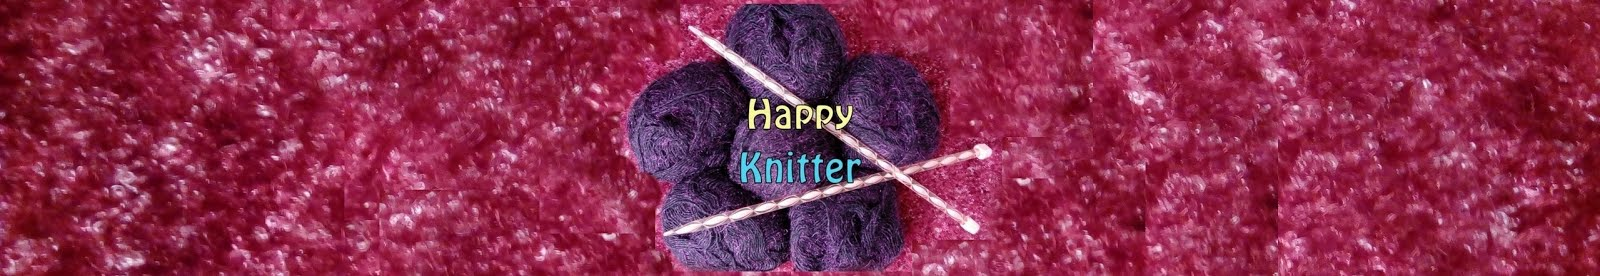 Happy Knitter